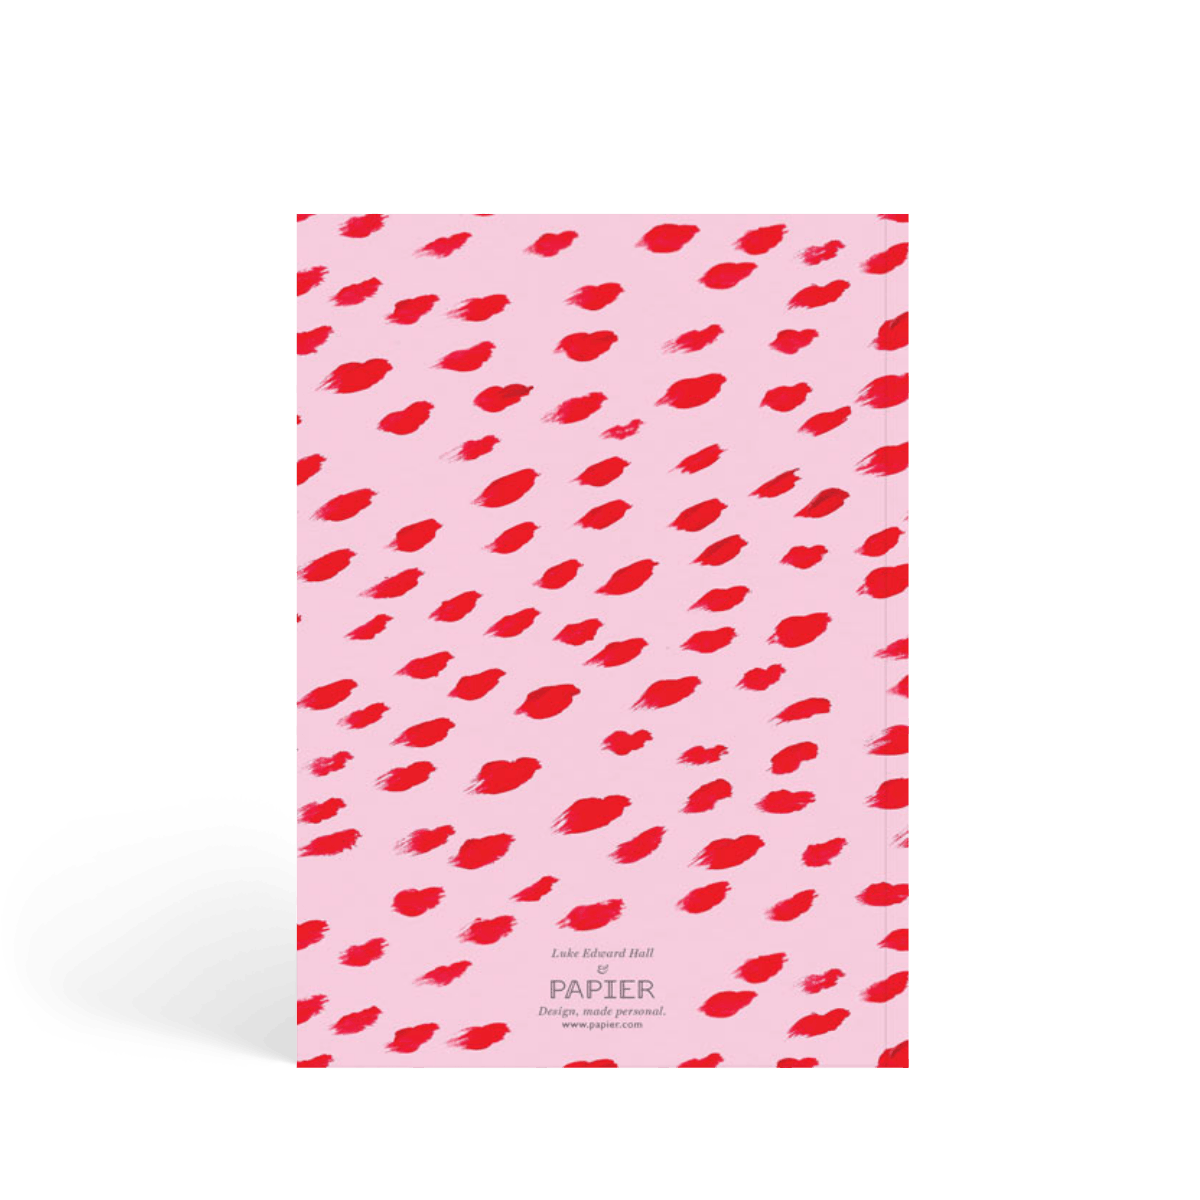 Https%3a%2f%2fwww.papier.com%2fproduct image%2f6158%2f5%2fludo pink 1596 arriere 1461146588.png?ixlib=rb 1.1